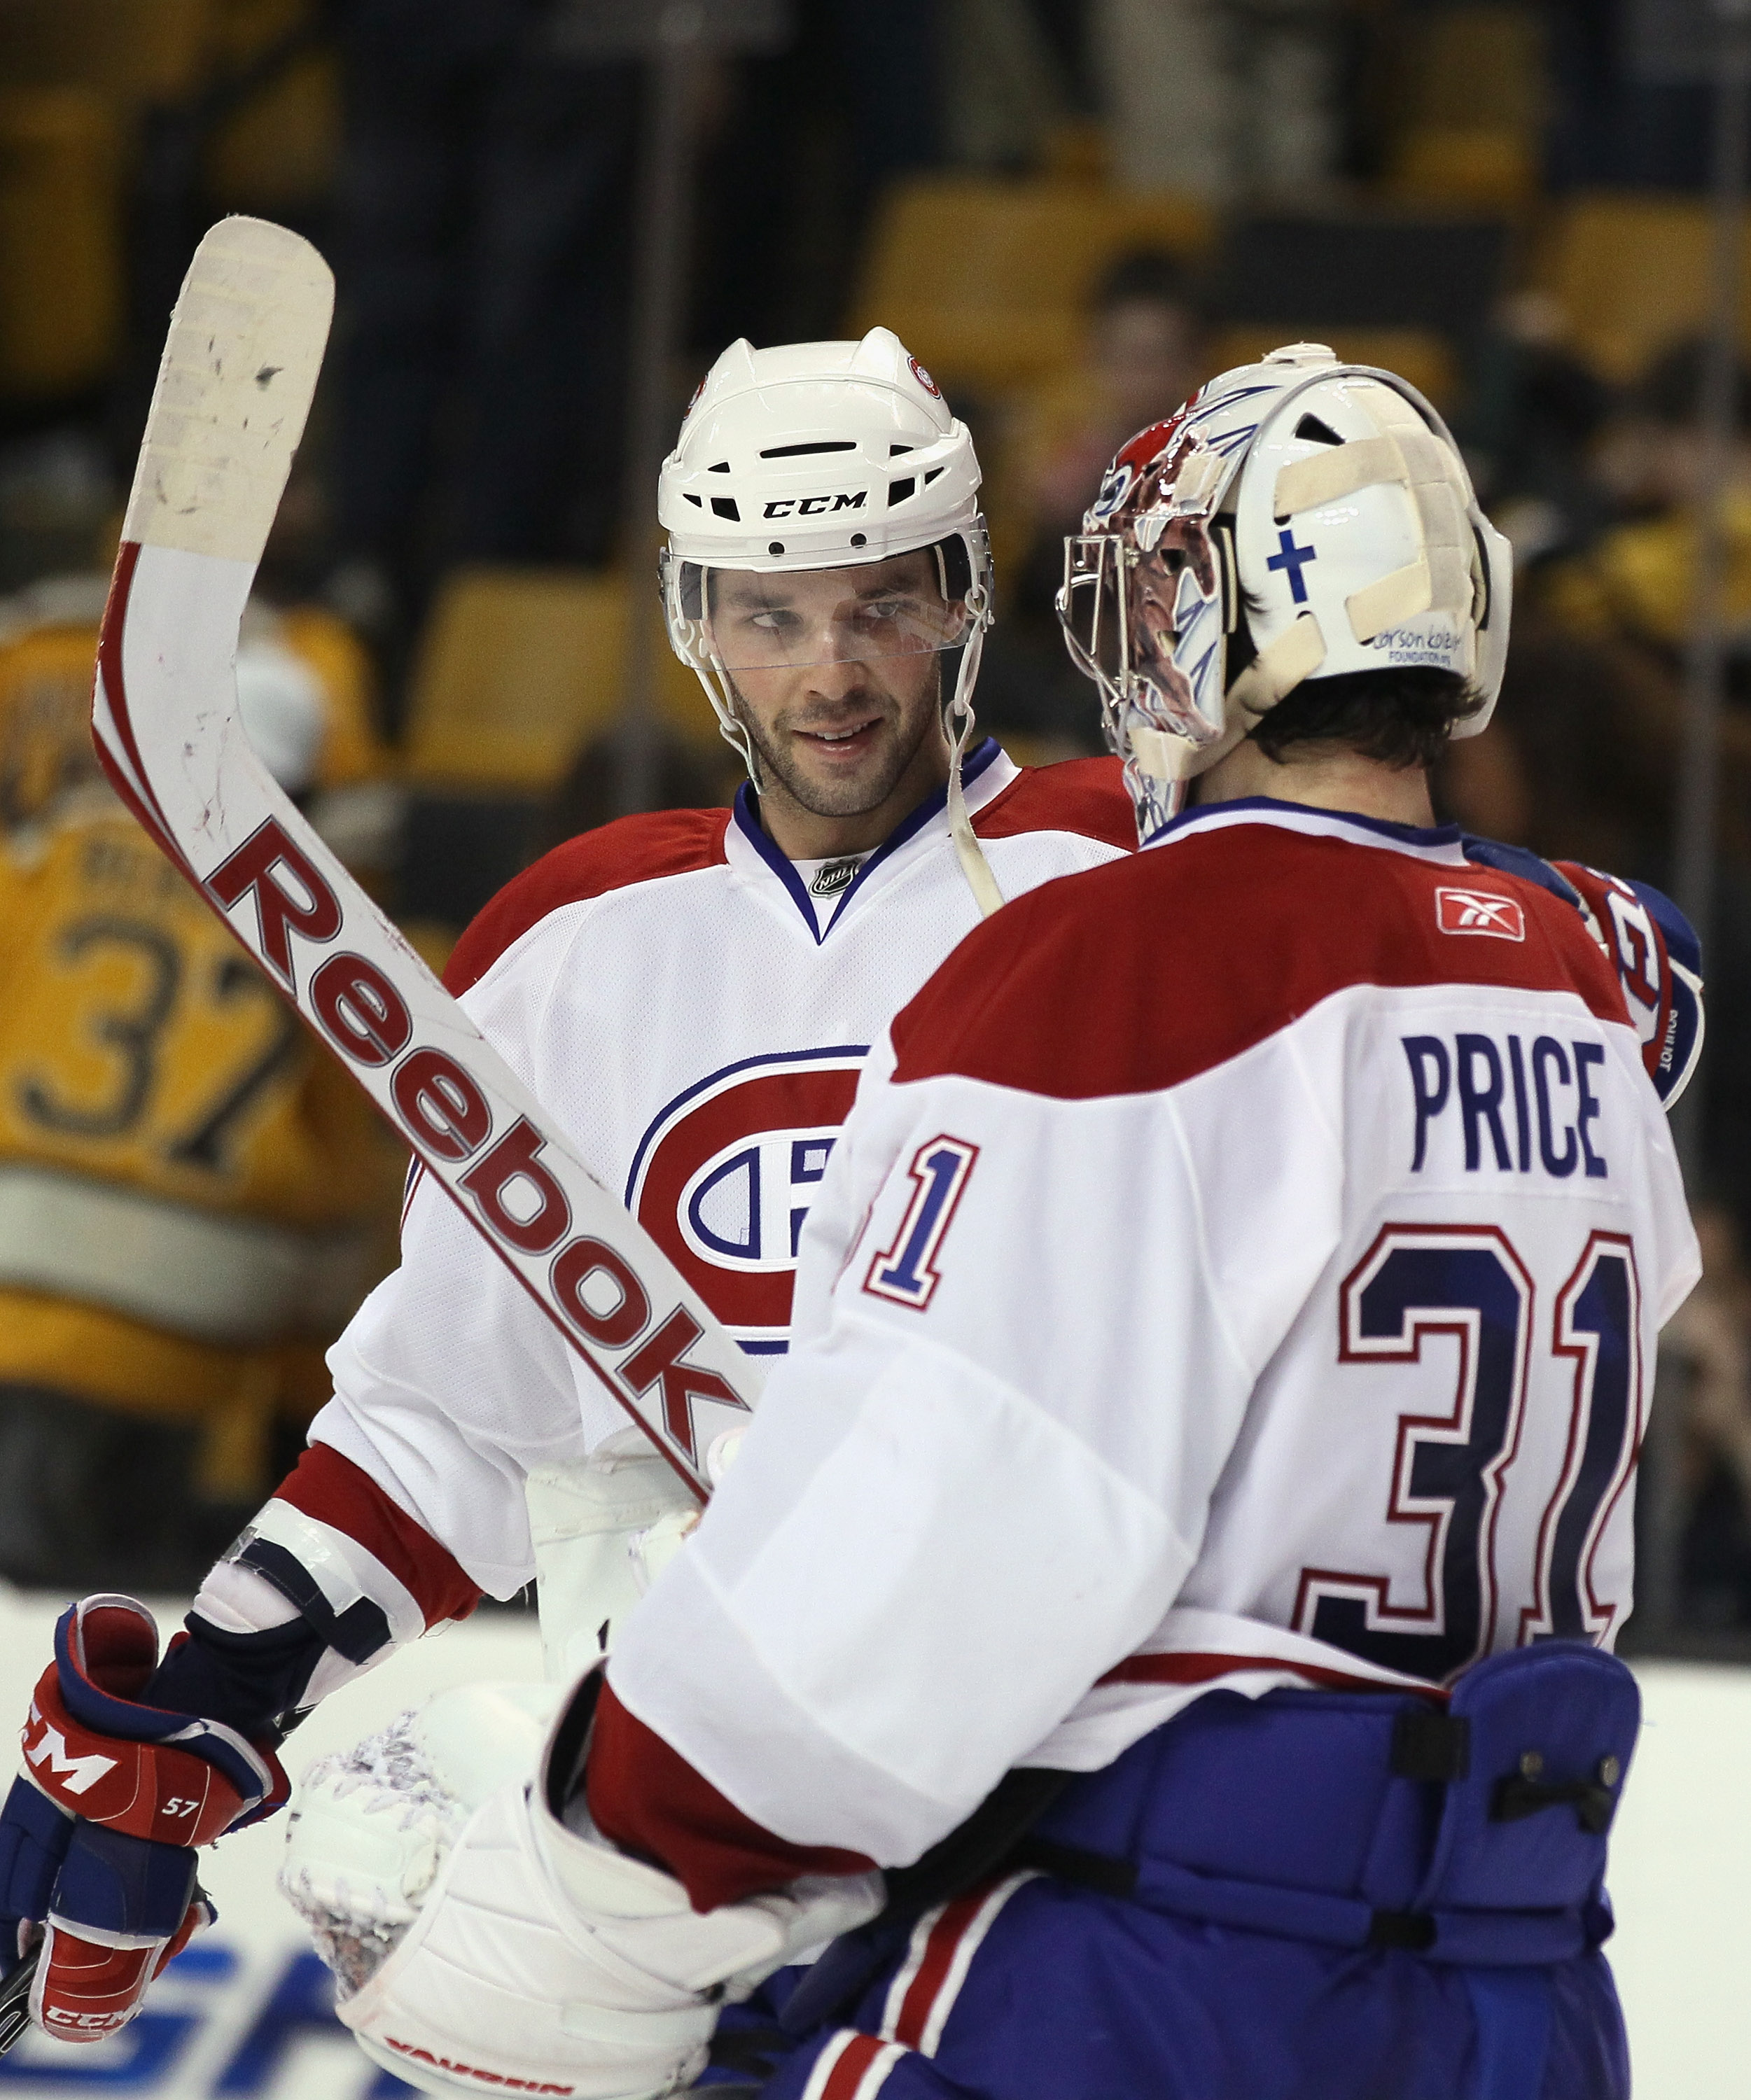 BOSTON, MA - APRIL 14:  Benoit Pouliot #57 of the Montreal Canadiens congratulates Carey Price #31 after Price shut out the Boston Bruins  in Game One of the Eastern Conference Quarterfinals during the 2011 NHL Stanley Cup Playoffs at TD Garden on April 1